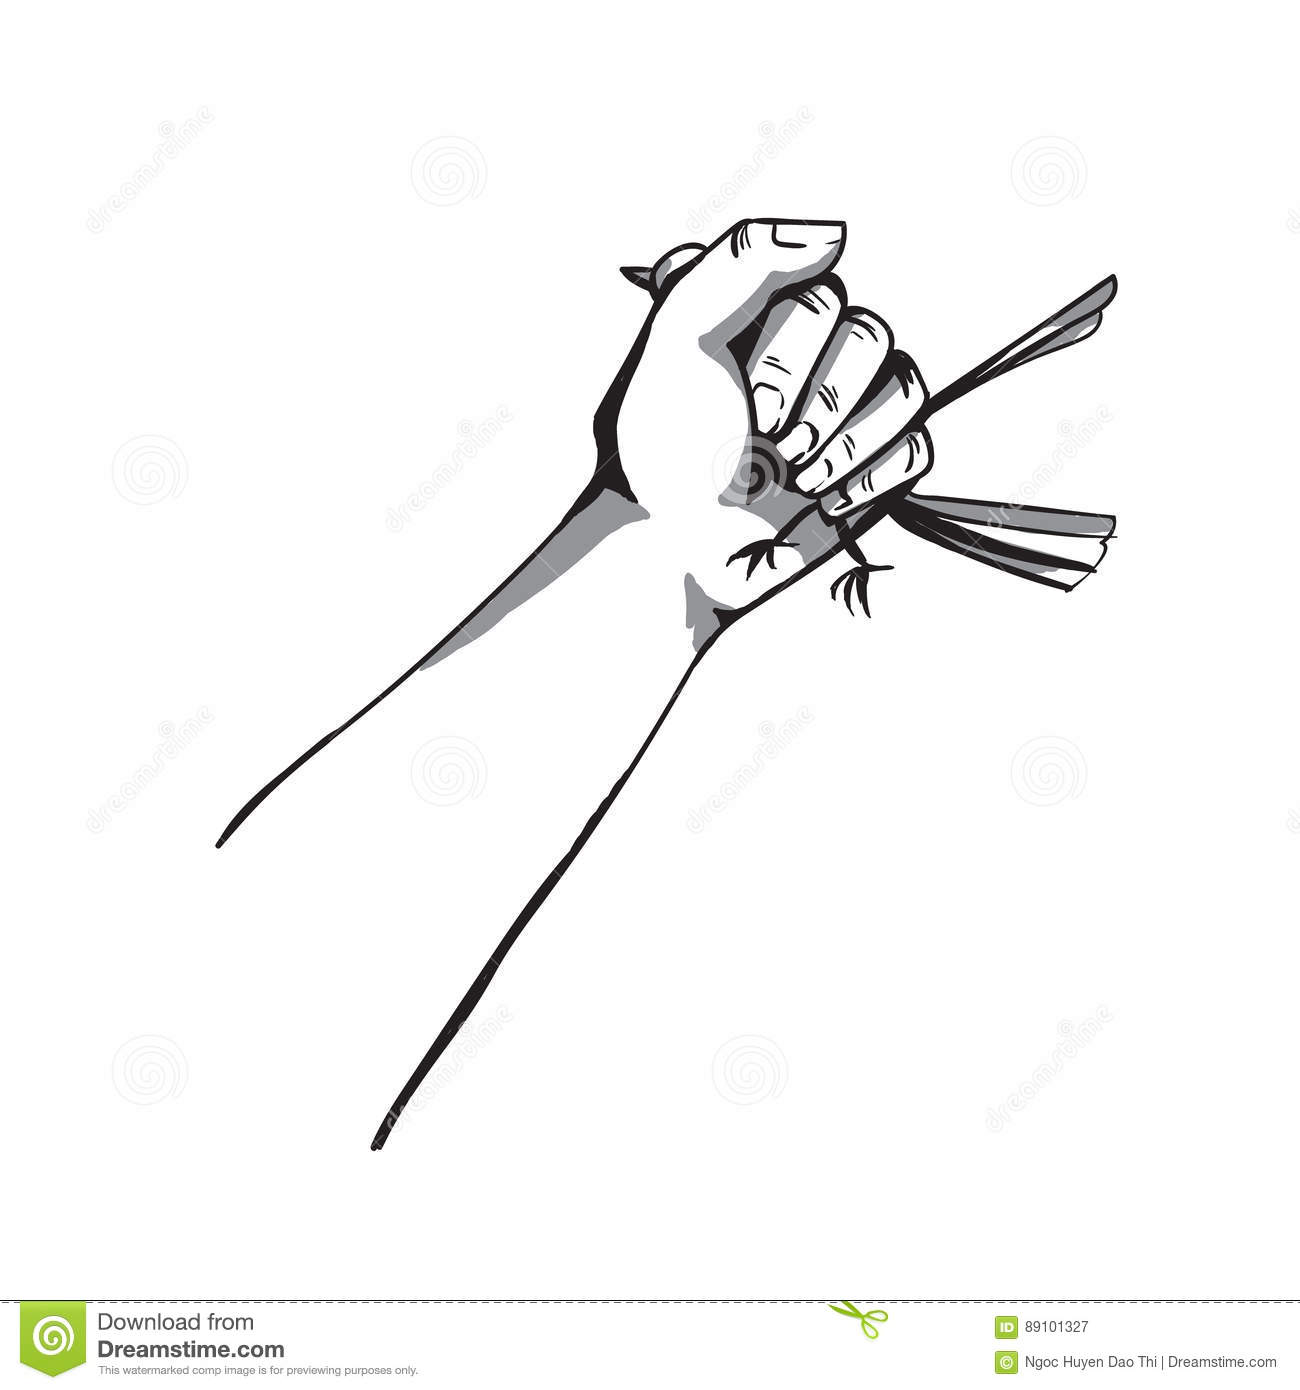 Vector Hand Squeezing A Bird Illustration Isolated On